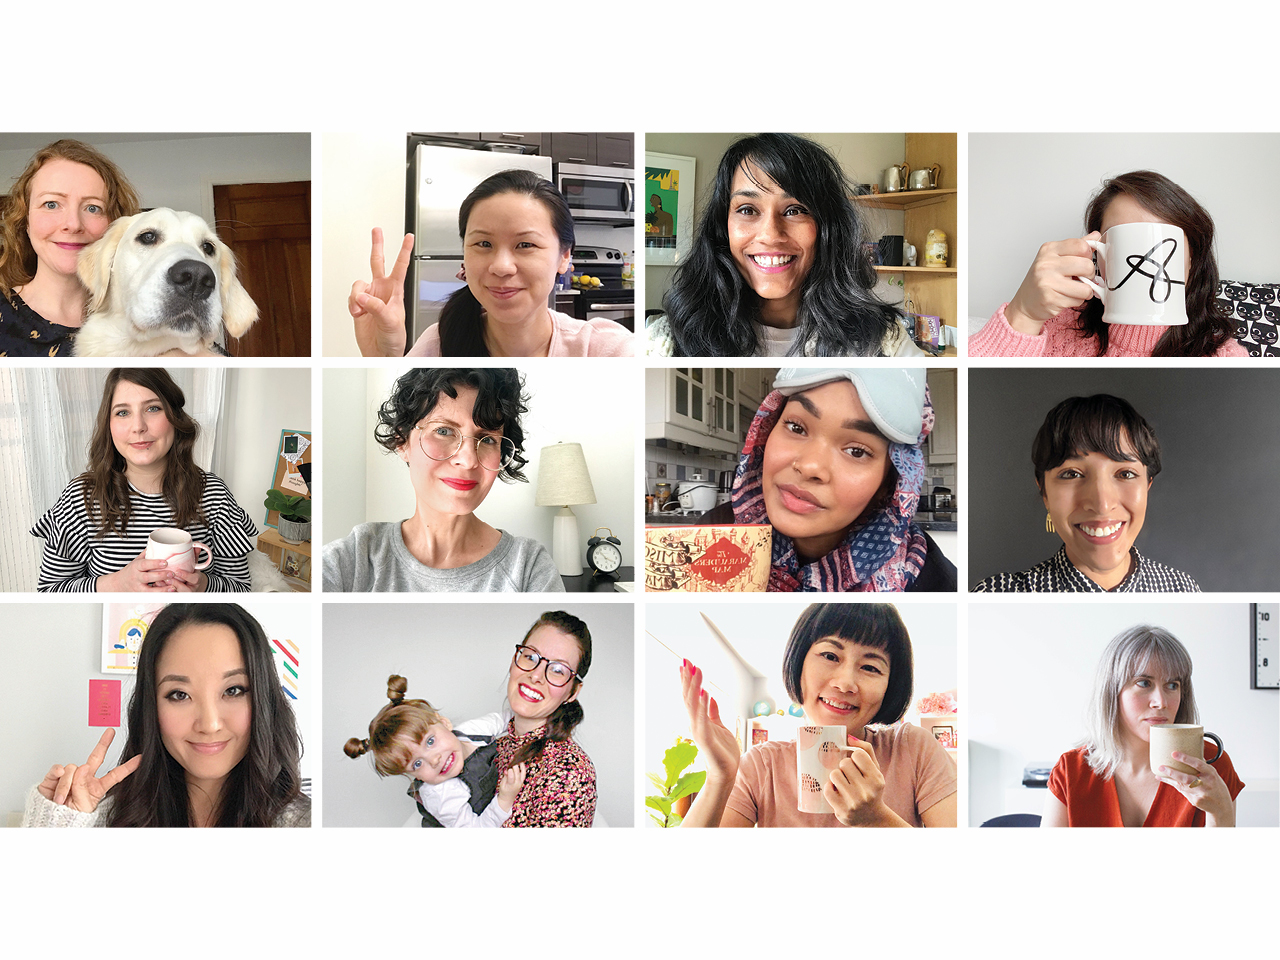 A grid, similar to Google Hangouts, featuring photos of the Chatelaine team